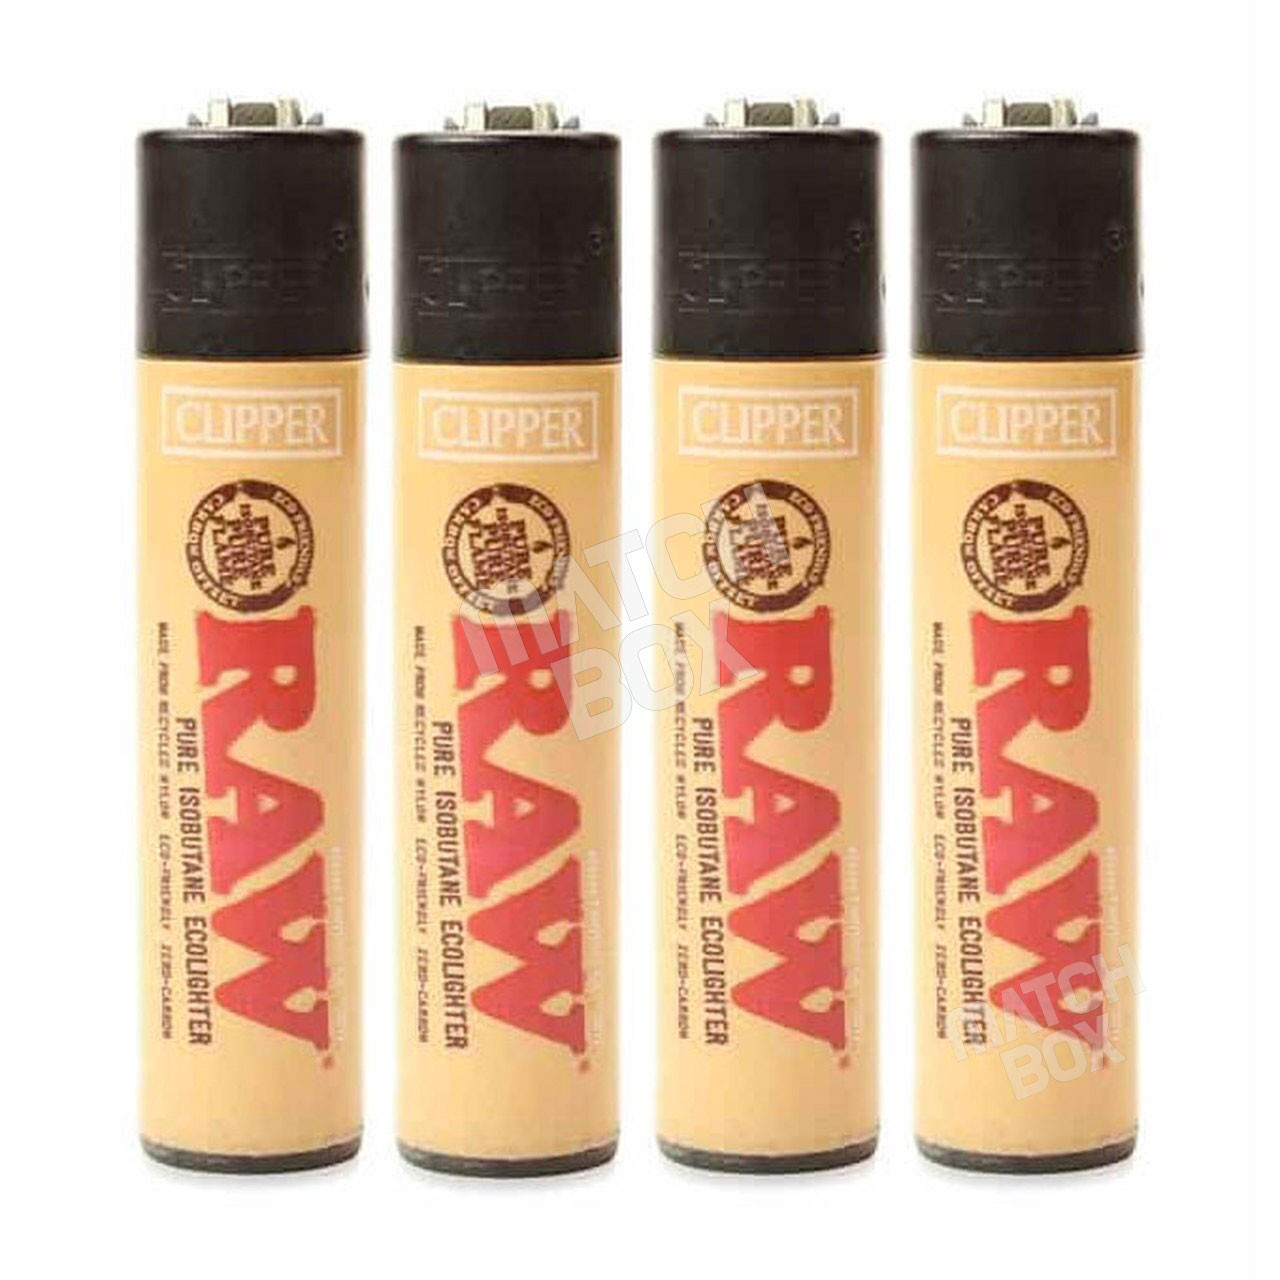 Clipper Lighter Raw Regular 4 piece bundle